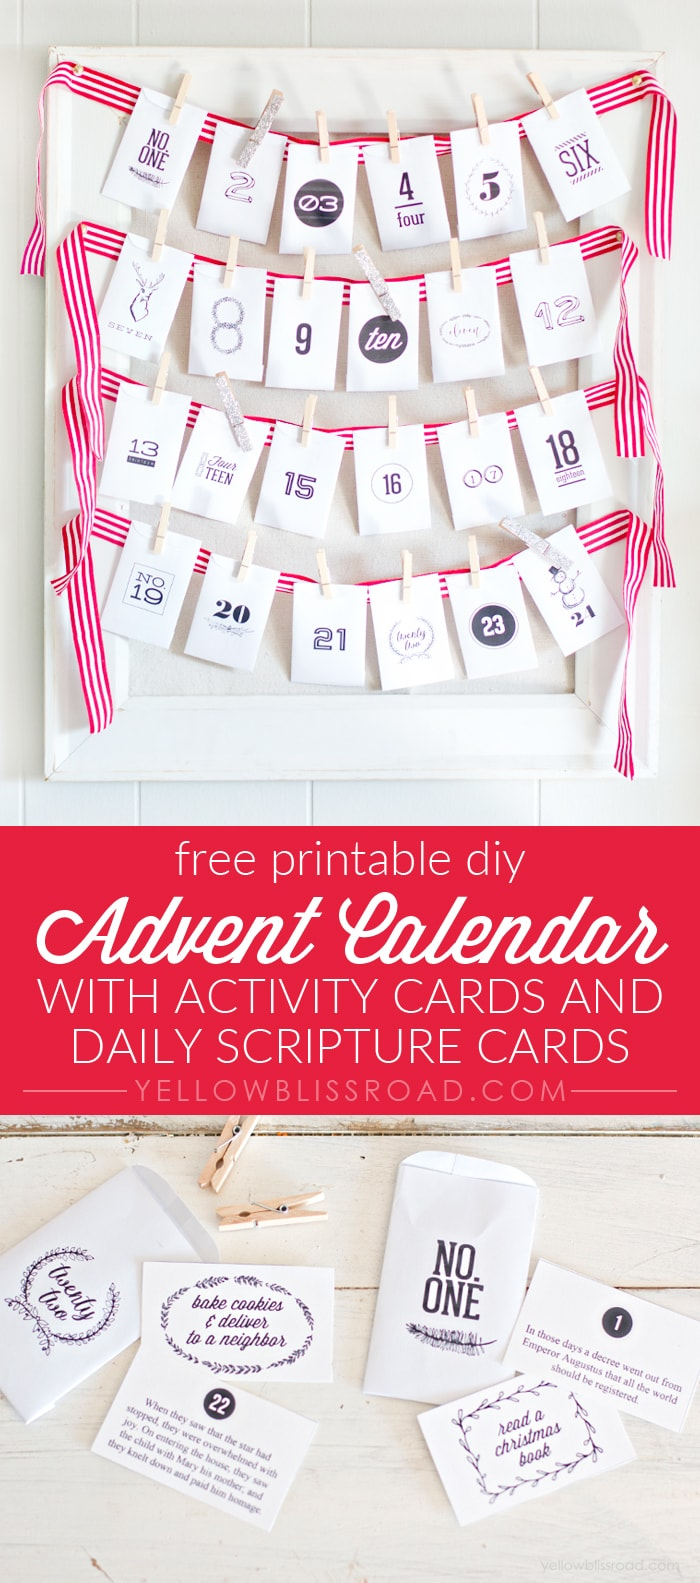 This free printable Advent Calendar set comes with printable envelopes, activity cards, and daily scripture cards. #Nativity #DIYAdventCalendar #FreePrintableChristmas